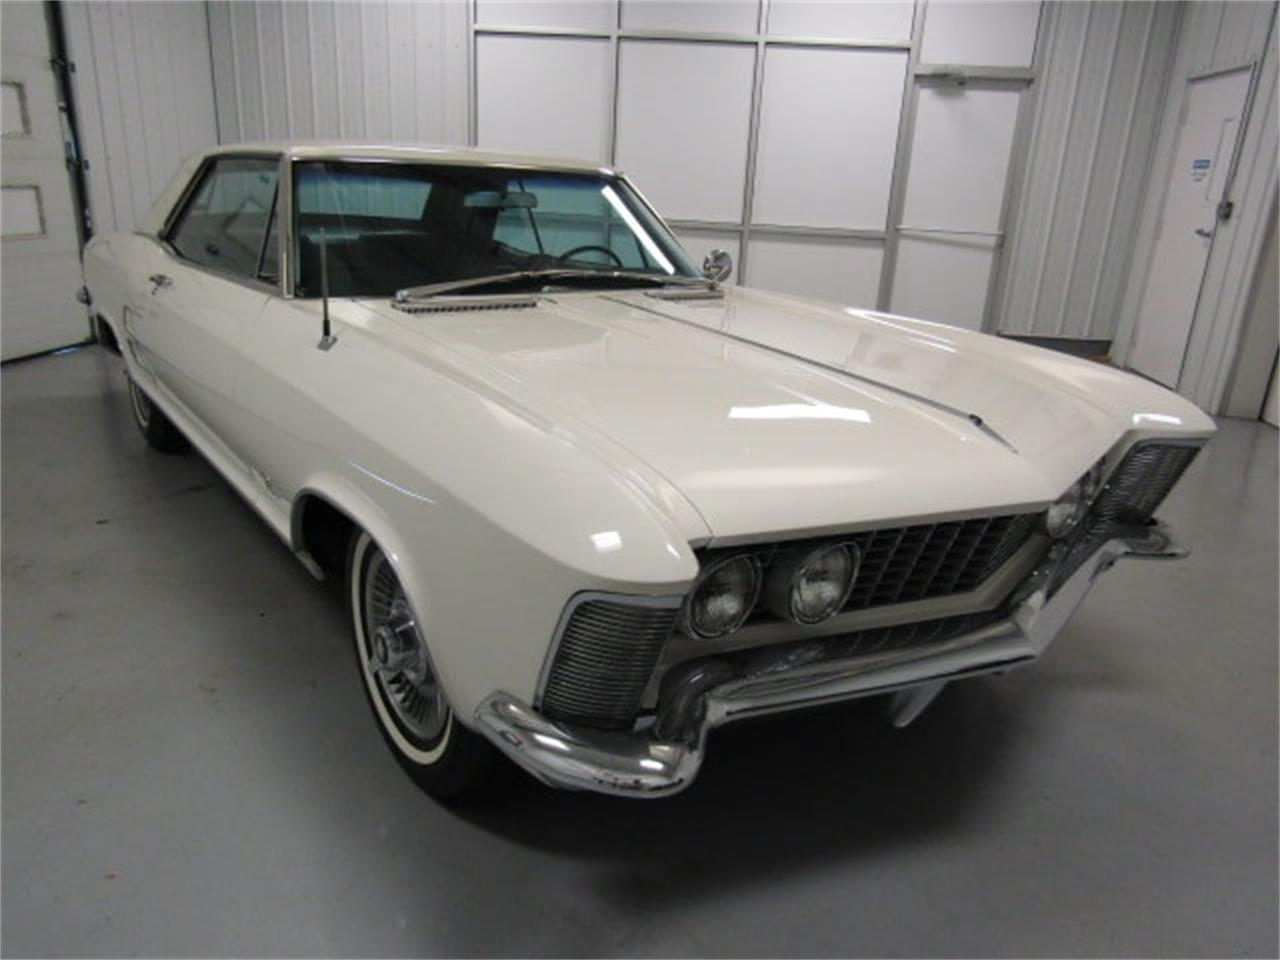 Large Picture of Classic 1963 Buick Riviera located in Virginia - $38,910.00 - MJSM